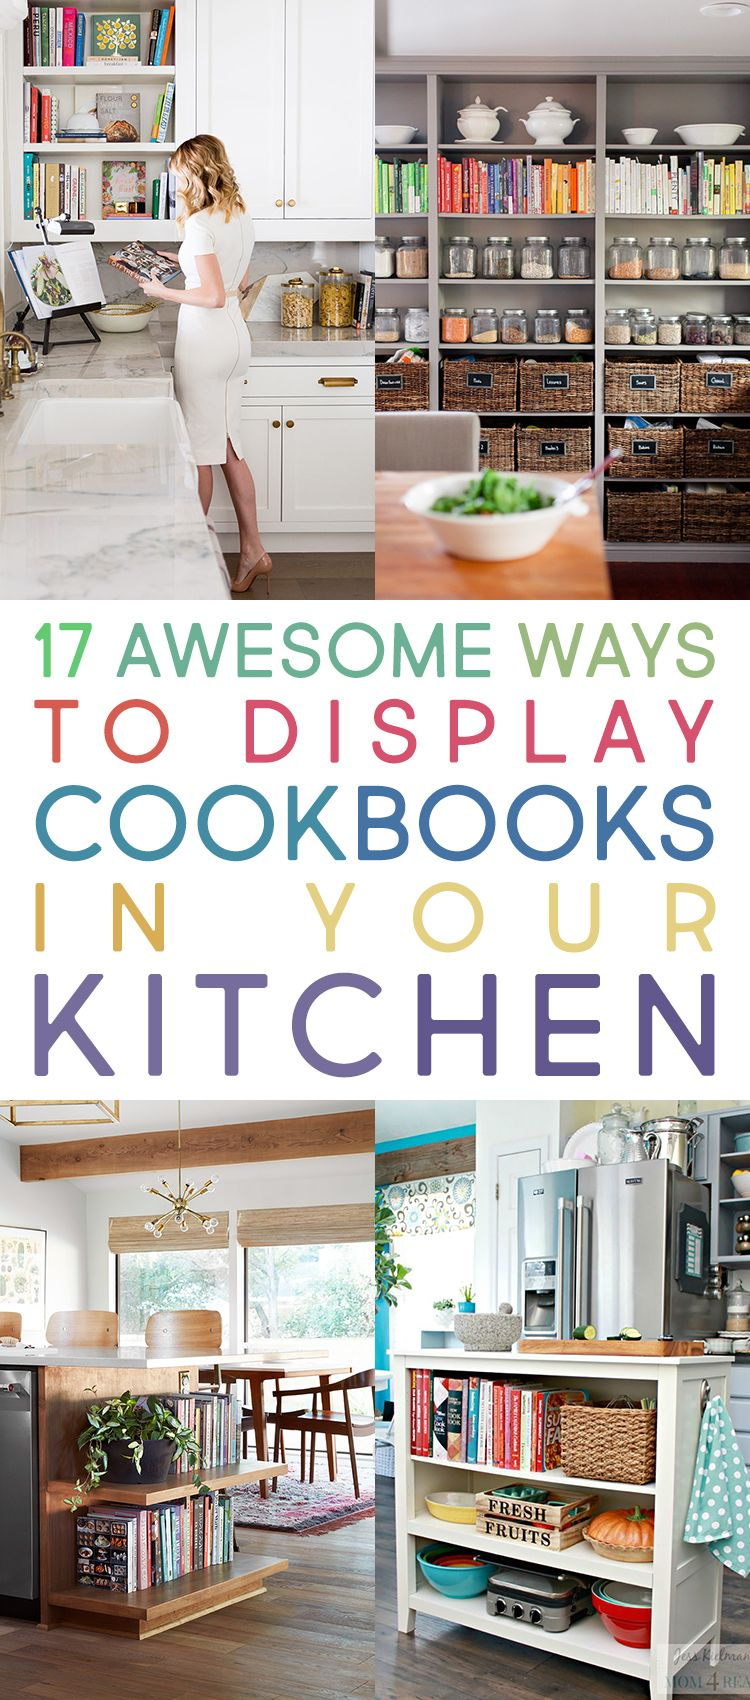 17 Awesome Ways To Display Cookbooks In Your Kitchen The Cottage Market Kitchen Cookbook Display Cookbook Display Cookbook Shelf